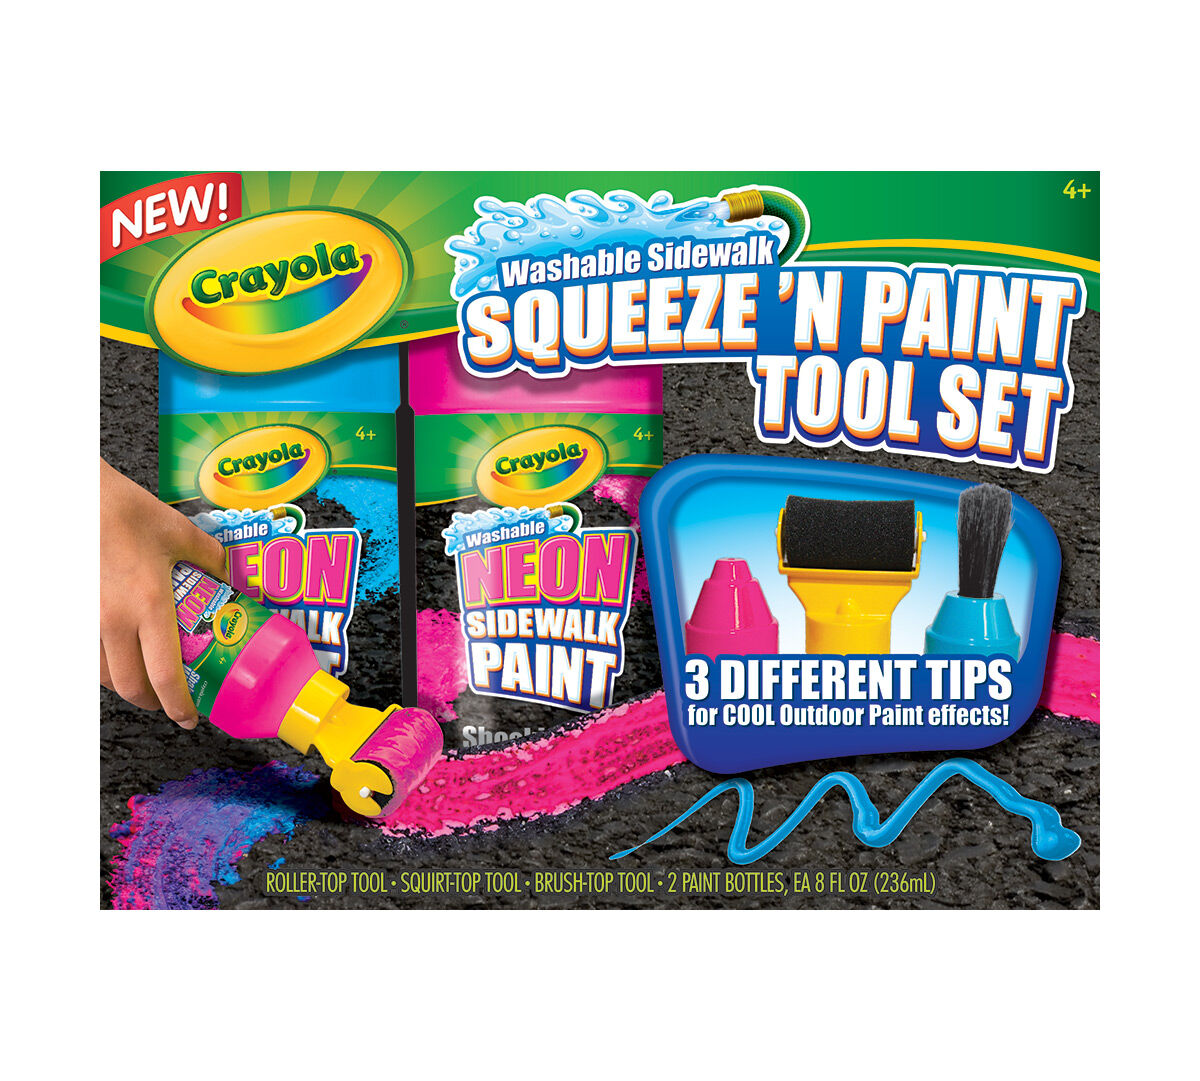 Squeeze 'N Paint Tool Set